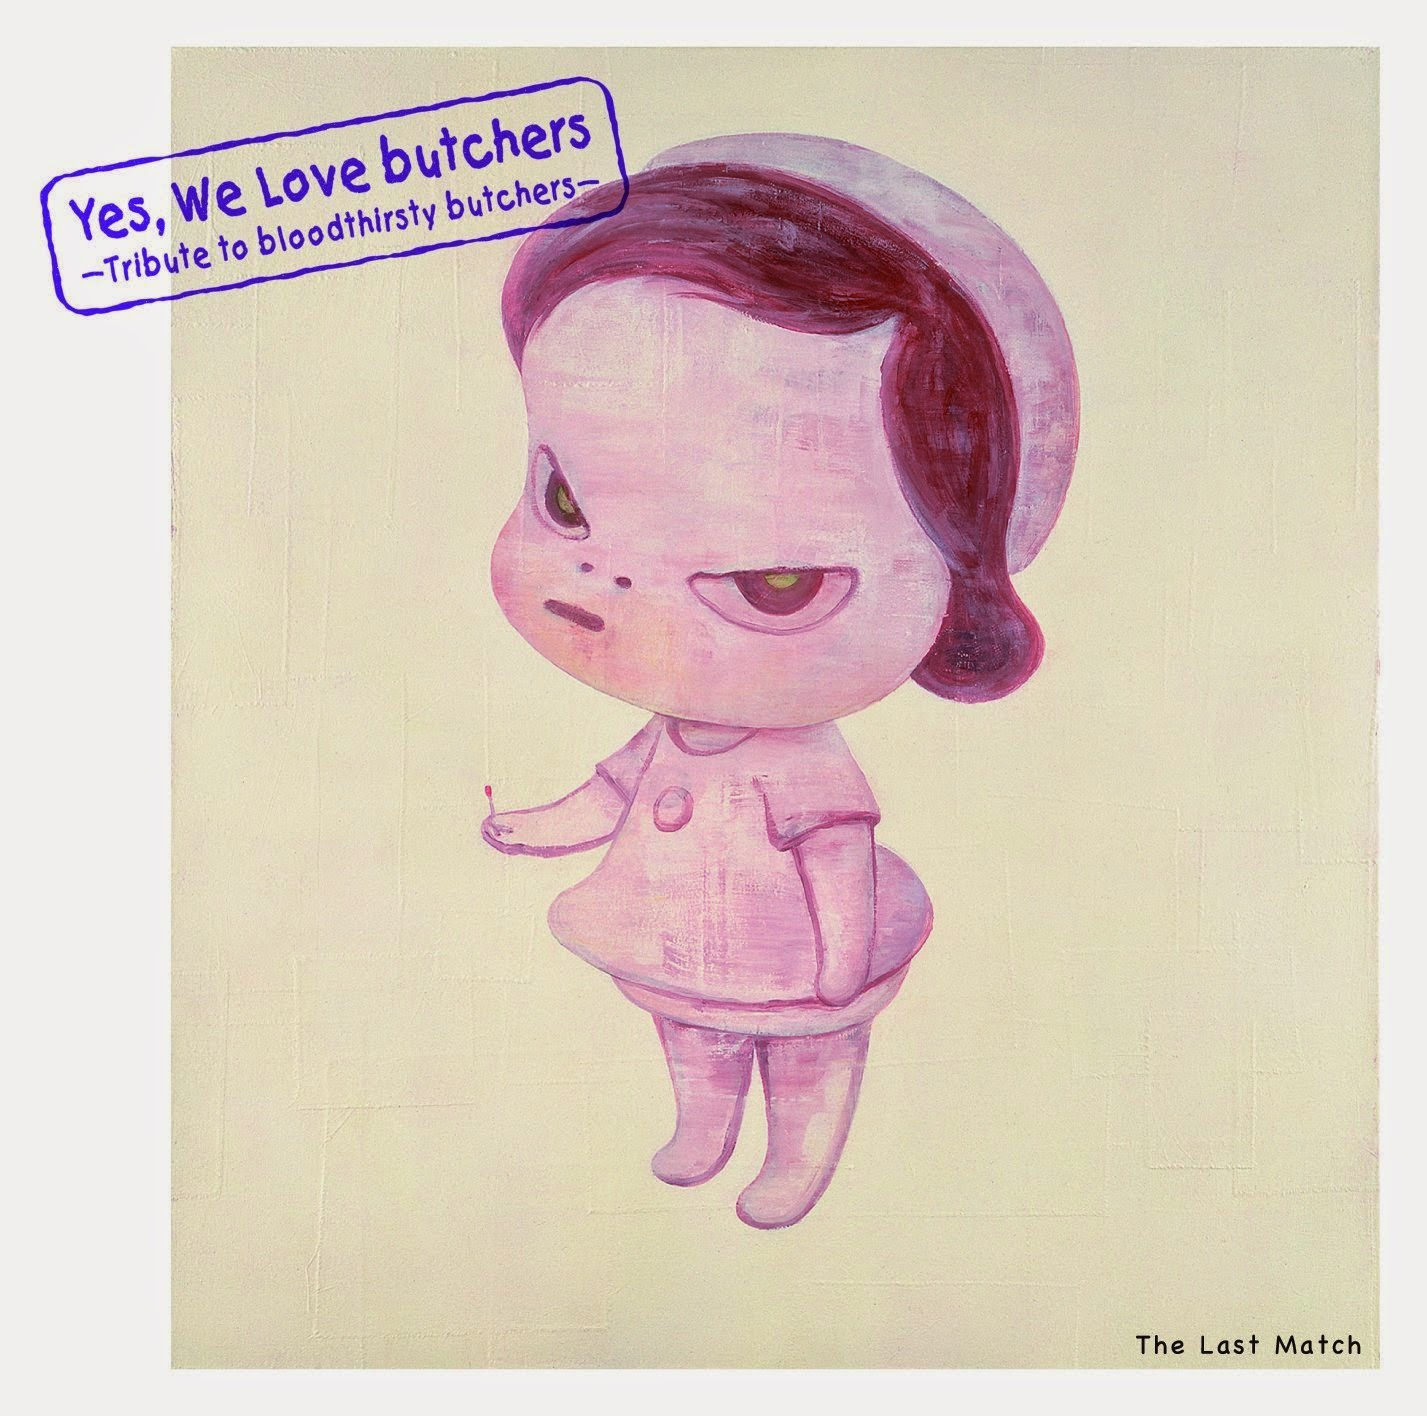 "<span class=""subTxt"">Tribute Album</span>Yes, We Love butchers ~Tribute to bloodthirsty butchers~ The Last Match"